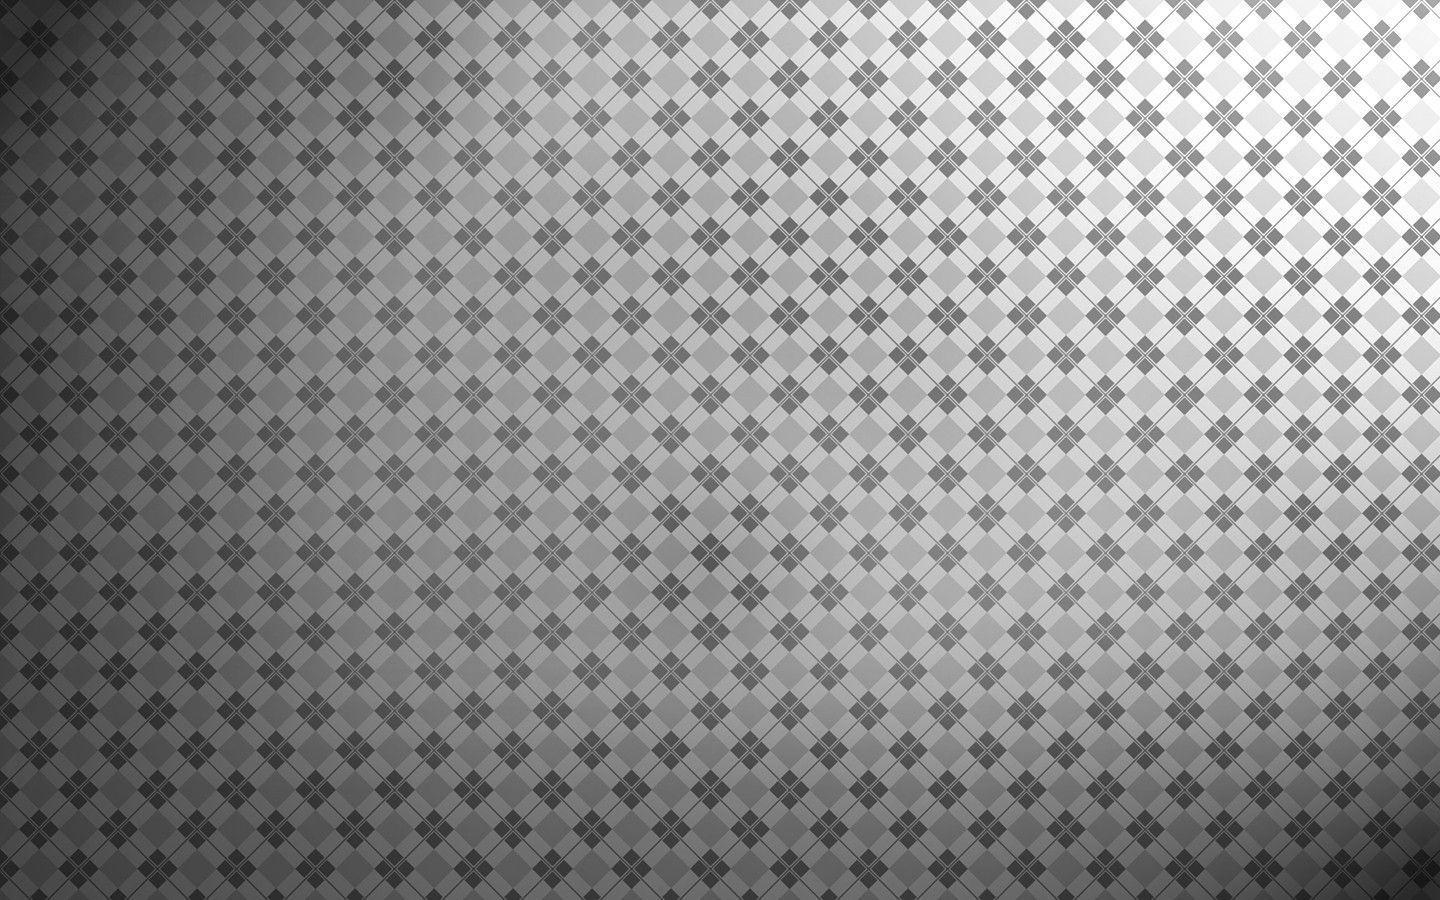 pattern-patterns-small-bricks-desktop-1440x900-wanted-wallpaper ...